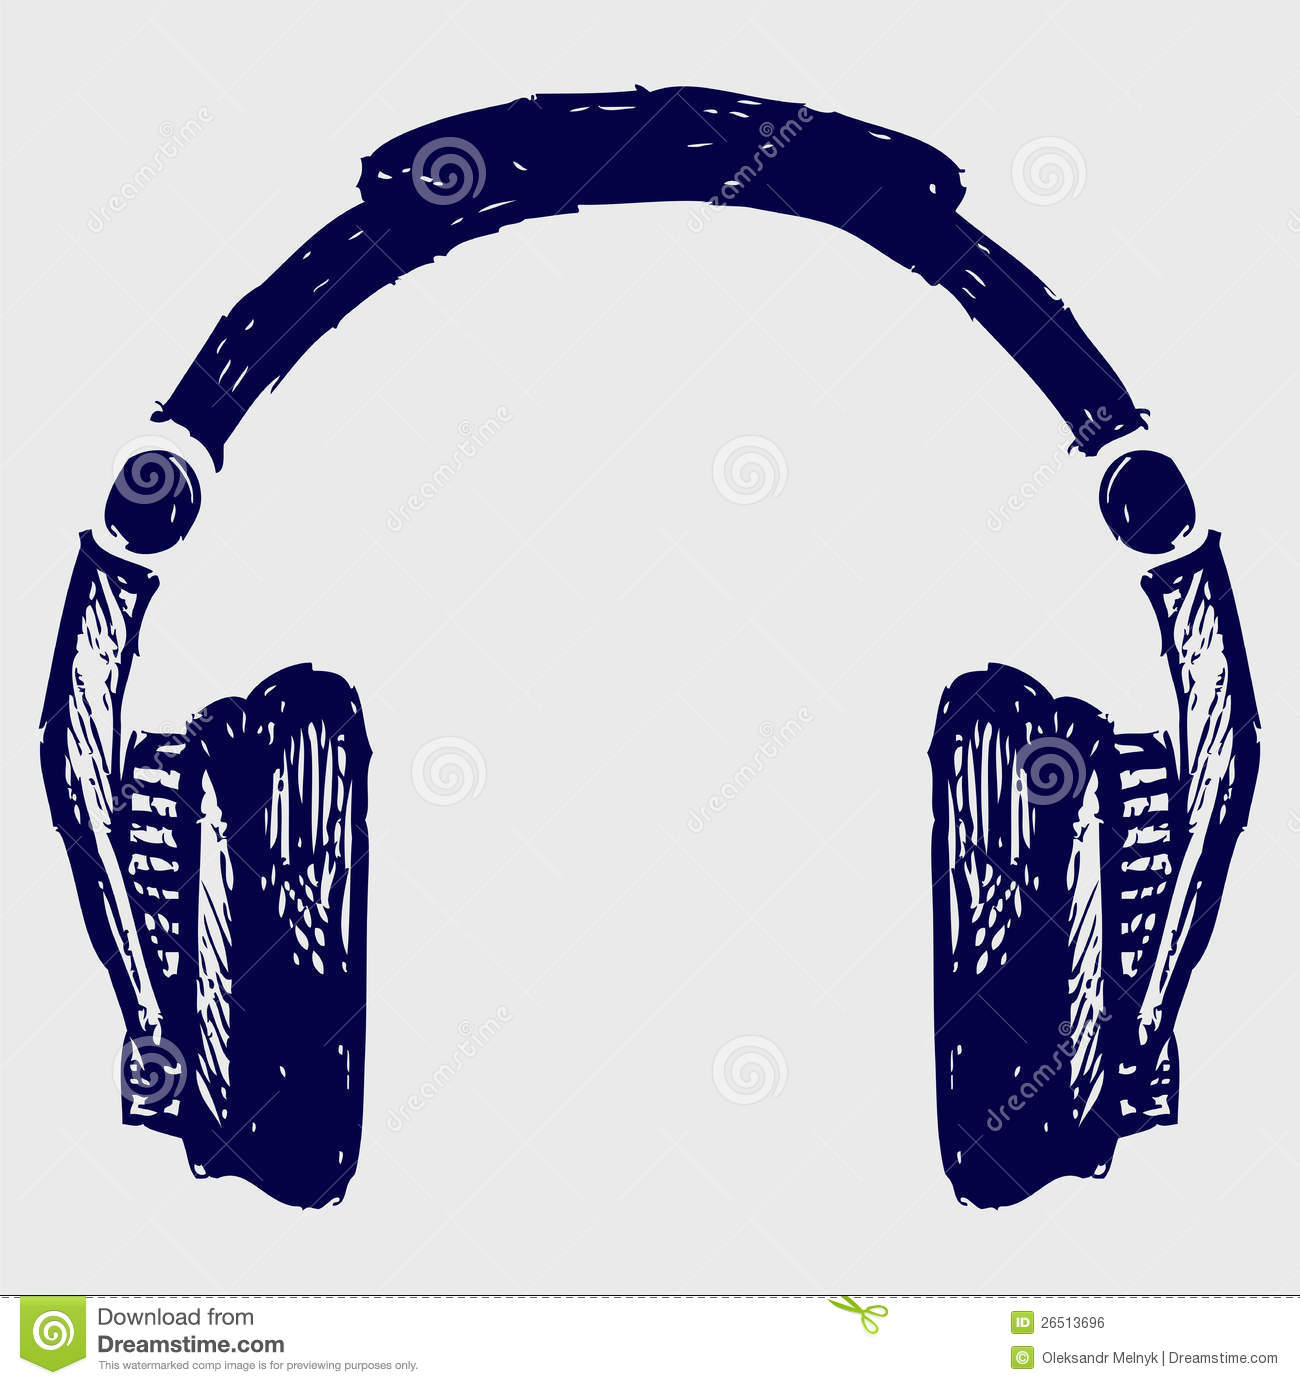 Headphones Sketch Royalty Free Stock Image - Image: 26513696